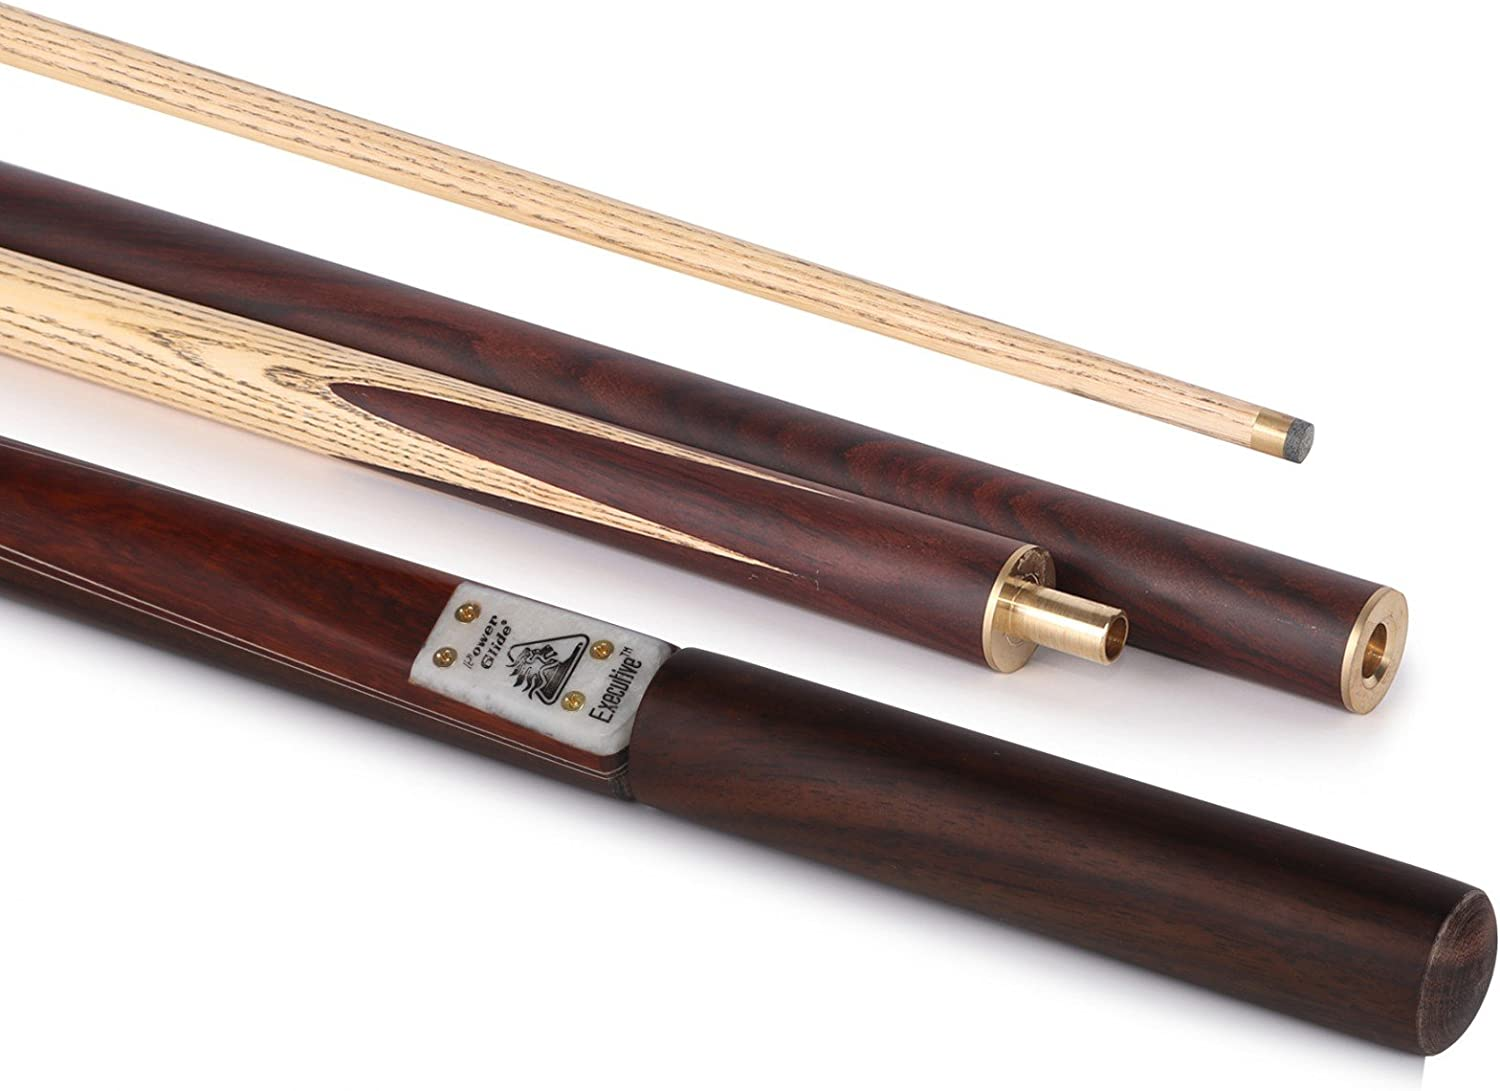 POWERGLIDE EXECUTIVE 3 4 JOINTED TOURNAMENT SNOOKER CUE CUE CUE IN